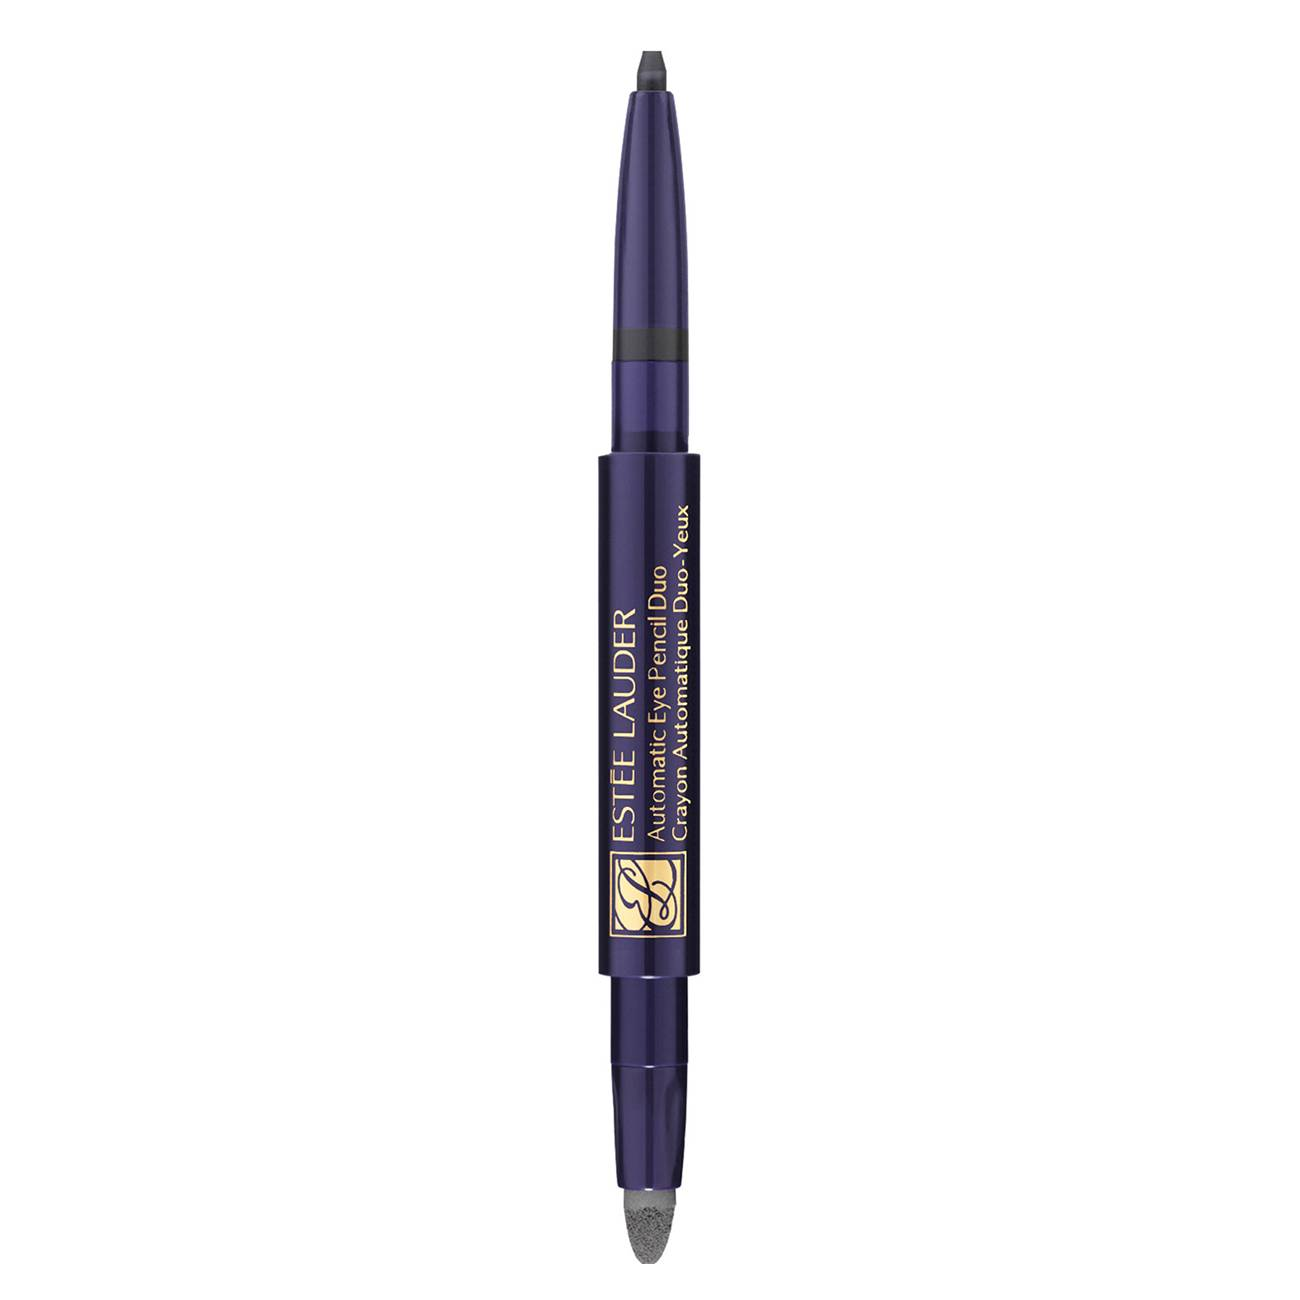 AUTOMATIC EYE PENCIL DUO 2.8 G